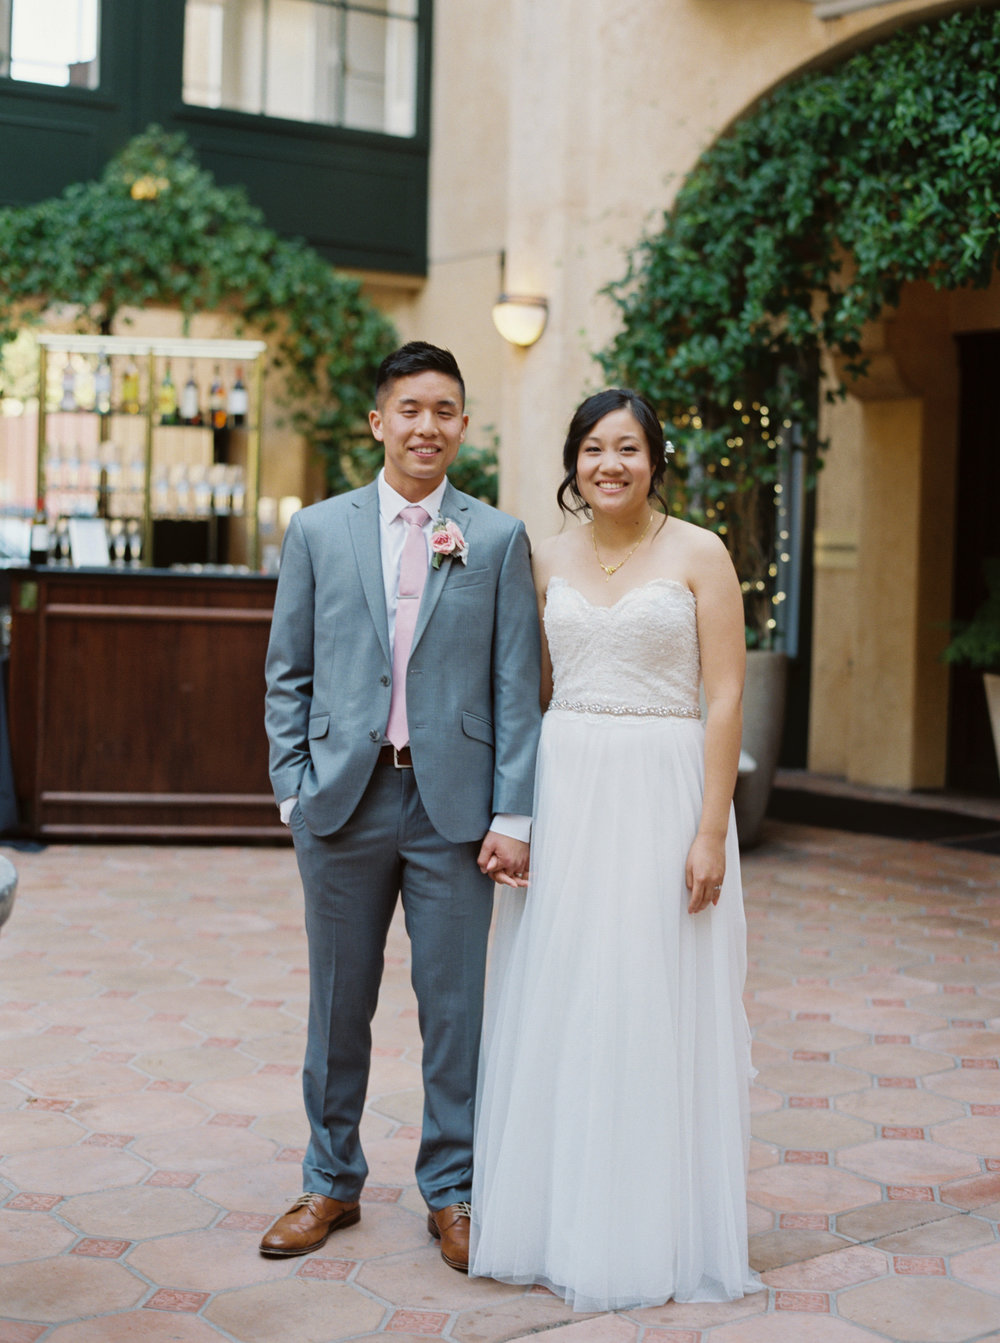 trynhphoto_wedding_photography_Standford_PaloAlto_SF_BayArea_Destination_OC_HA-25.jpg